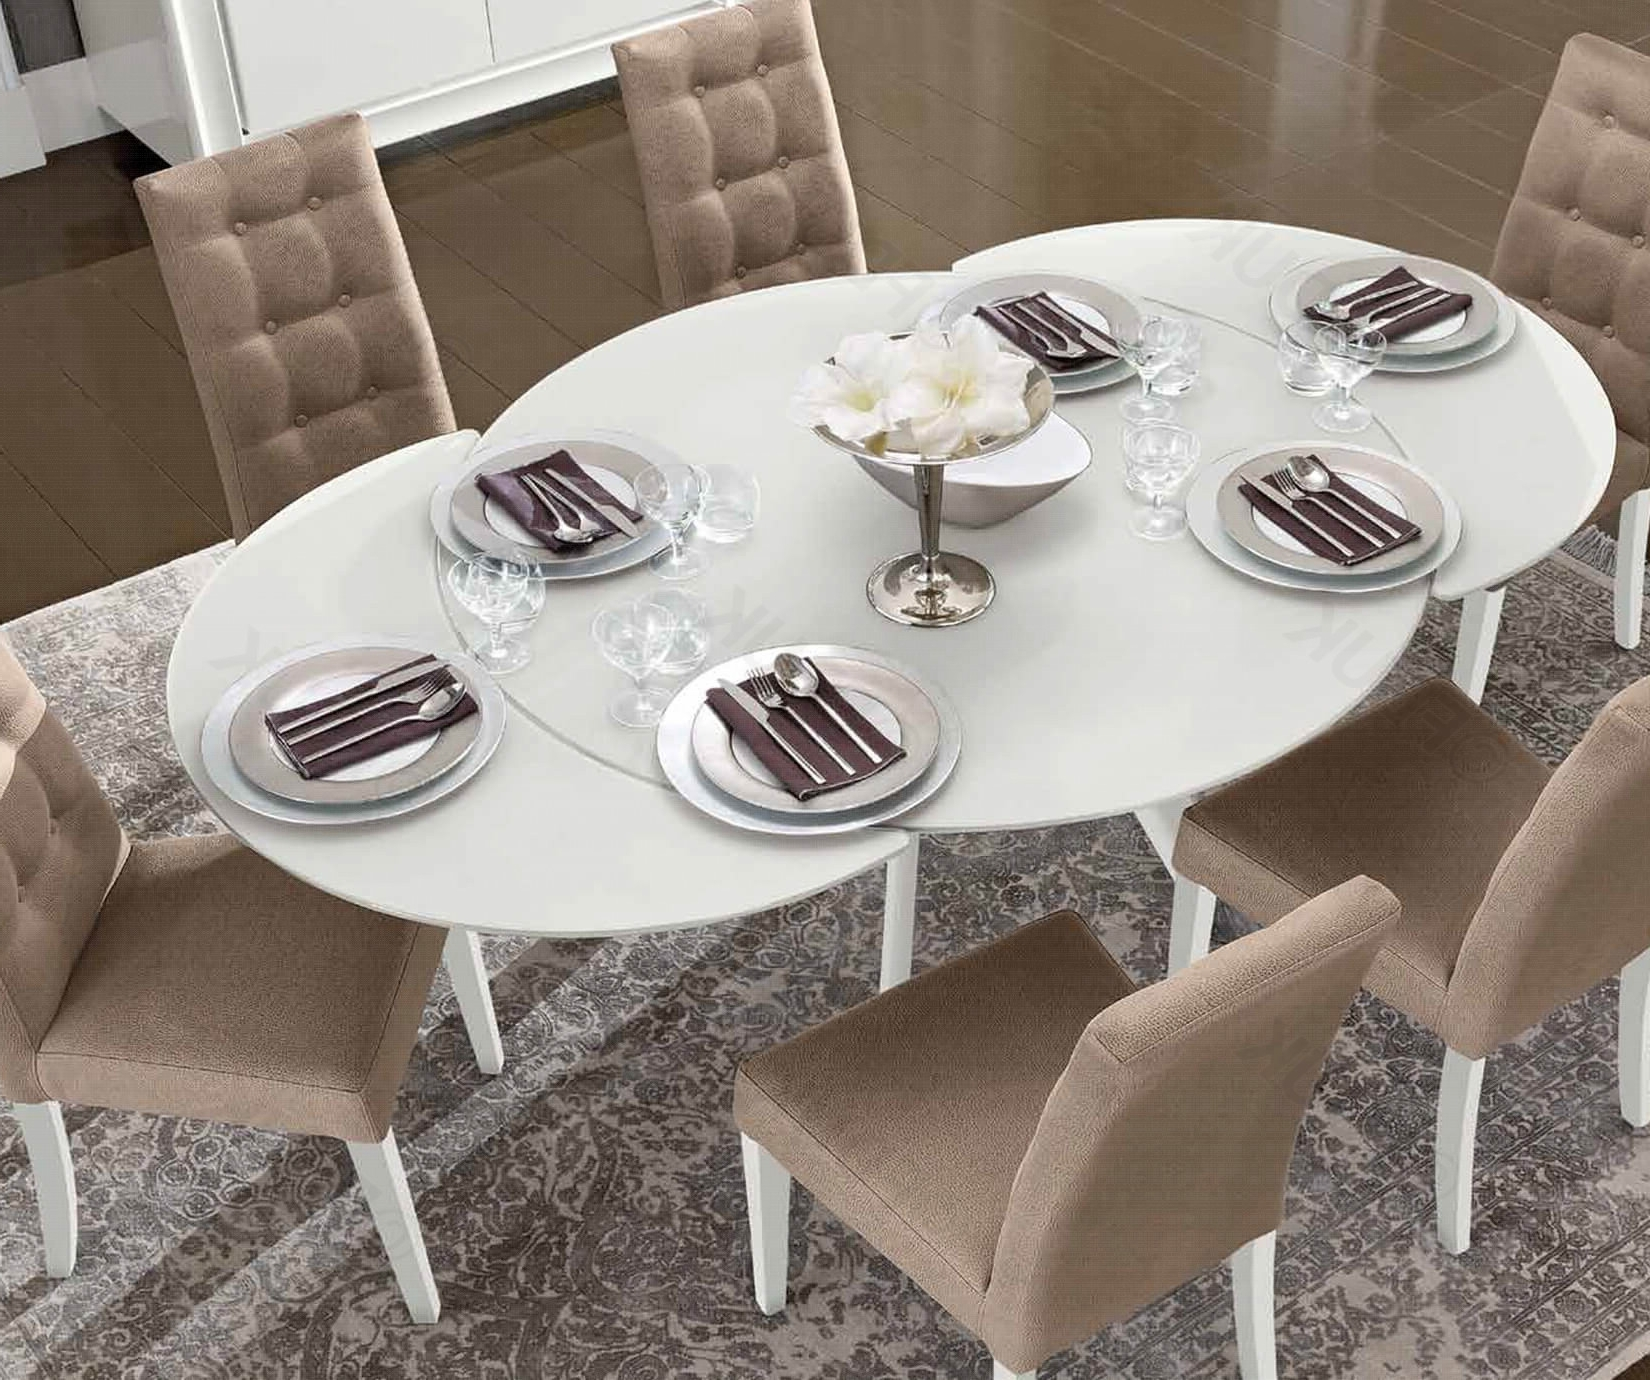 Dama Bianca White High Gloss Round Within Fashionable White High Gloss Dining Chairs (View 12 of 25)